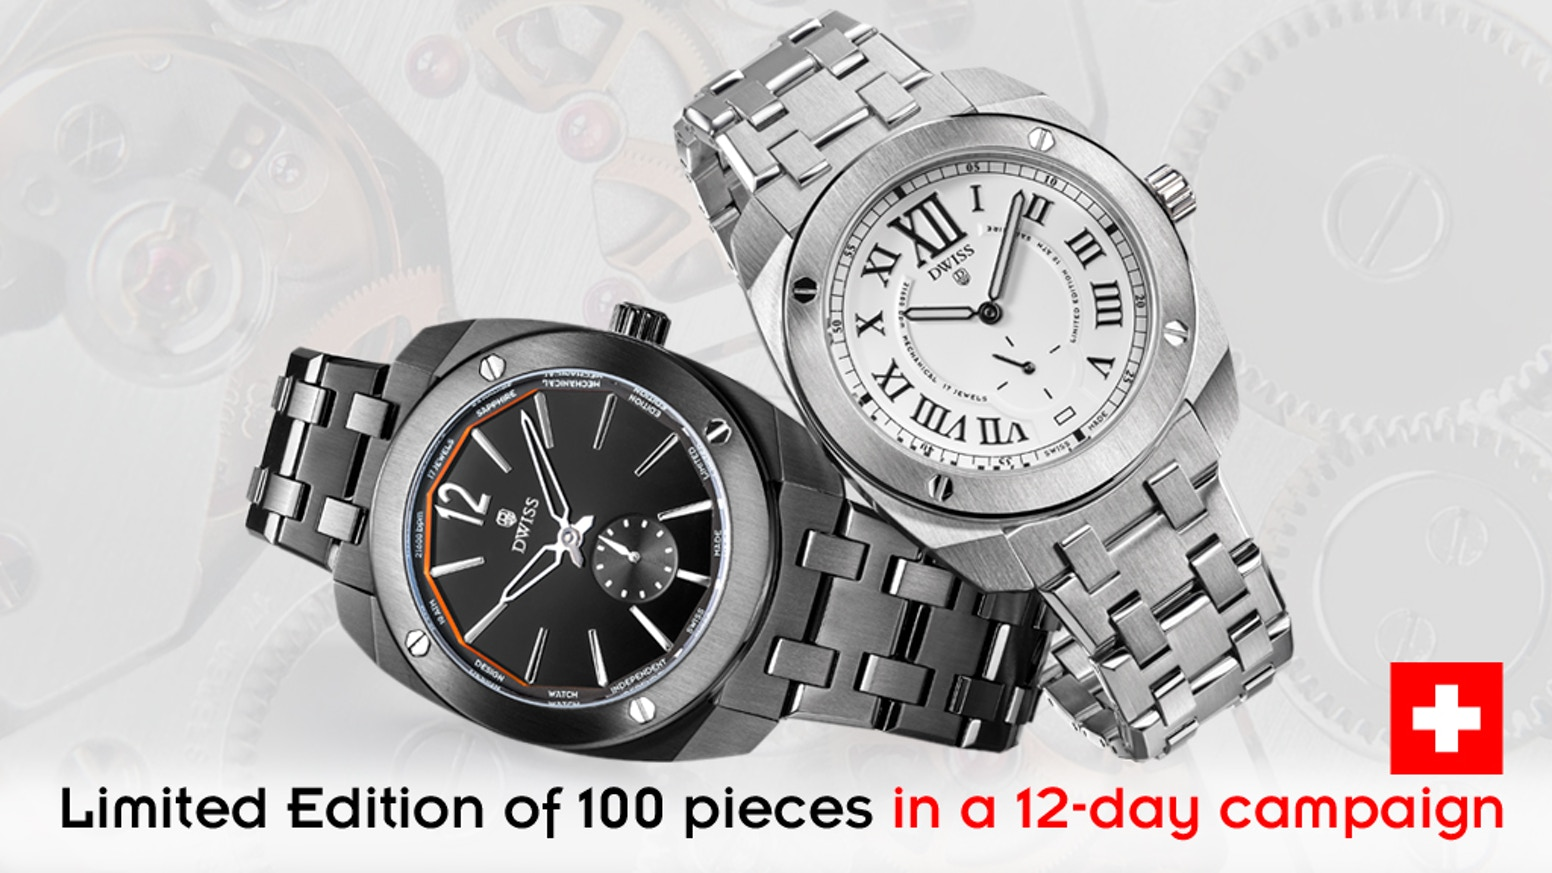 After raising more than 600K, this design-awarded company is back with a luxury Swiss watch using ETA 7001 top grade movement. Limited to 100 pieces only in a 12 day campaign.